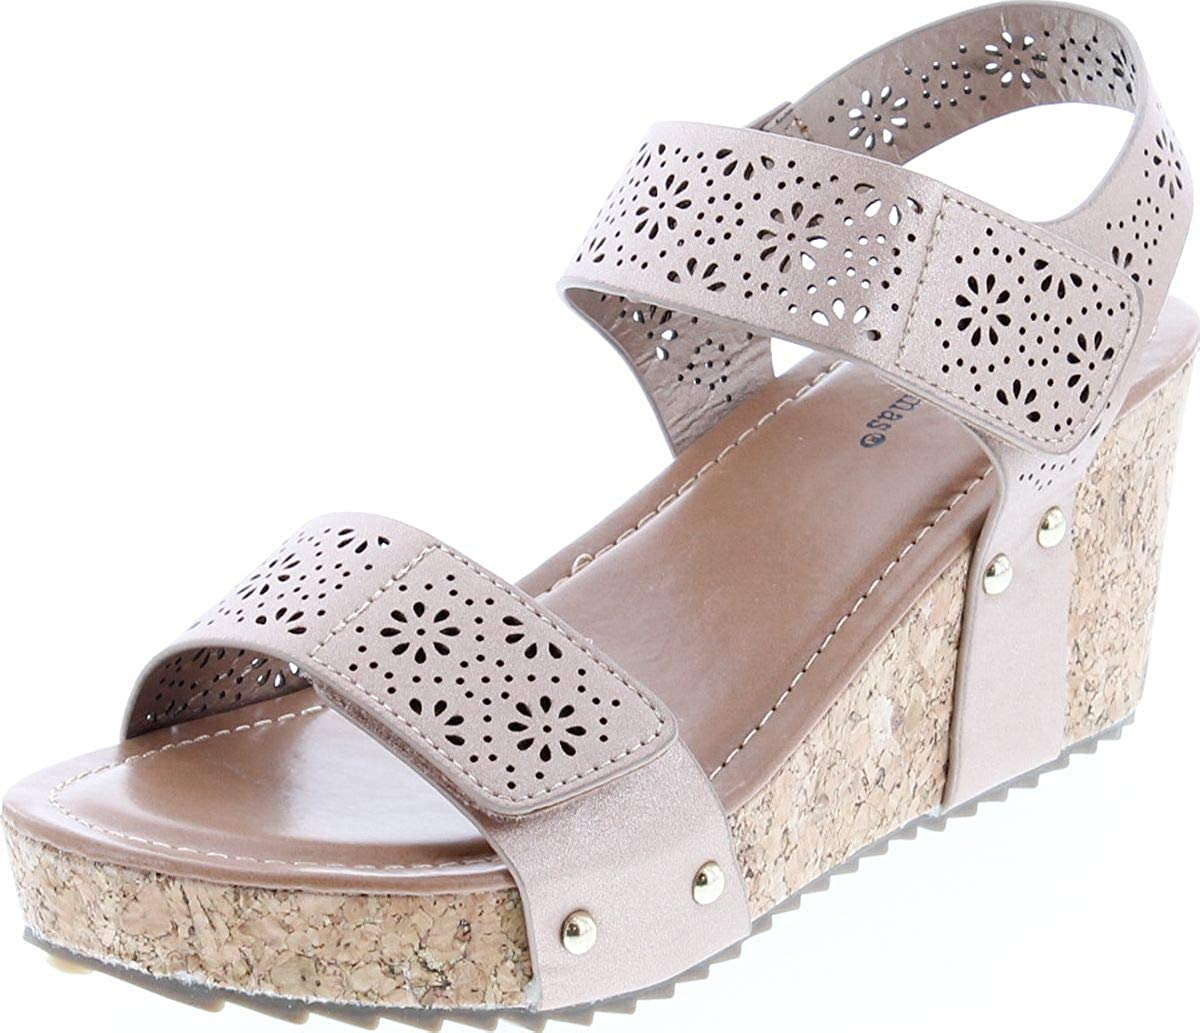 OFFicial mail order Pierre Dumas Giselle-10 Max 49% OFF Womens Sandals